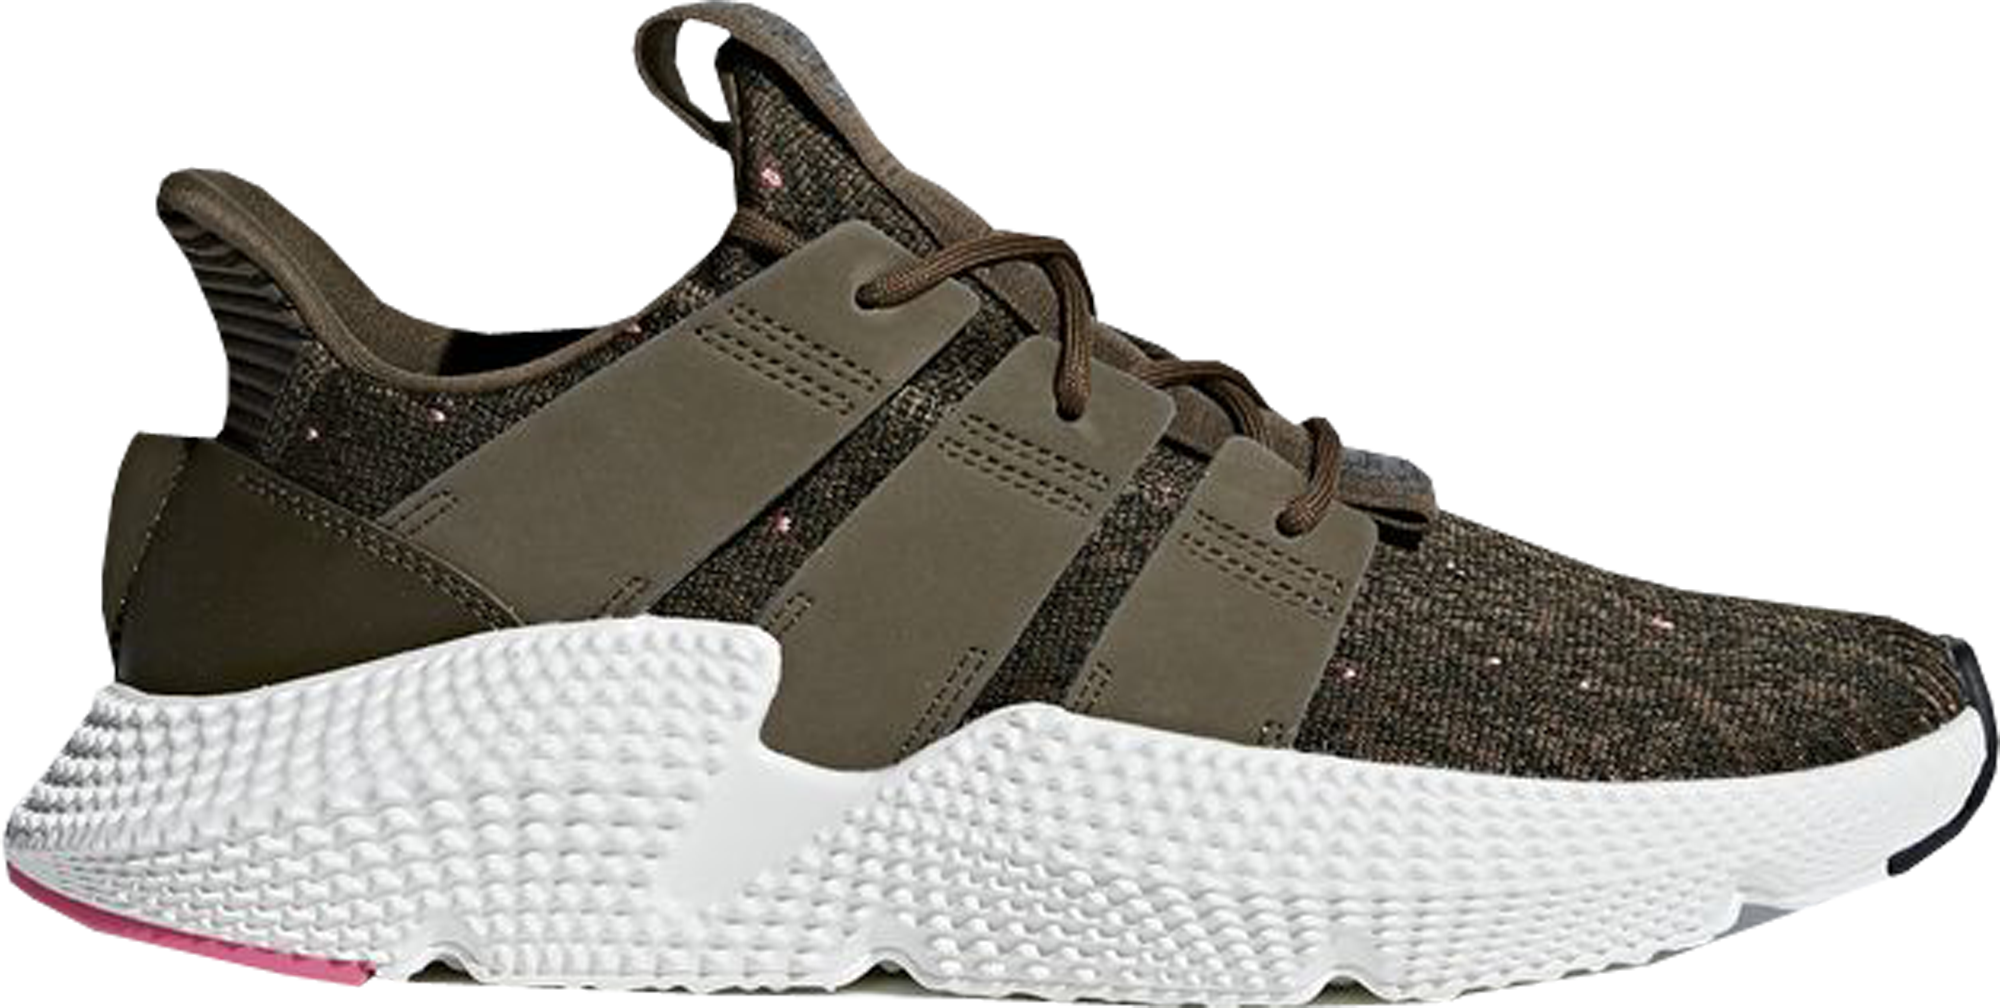 adidas Prophere Trace Olive - StockX News